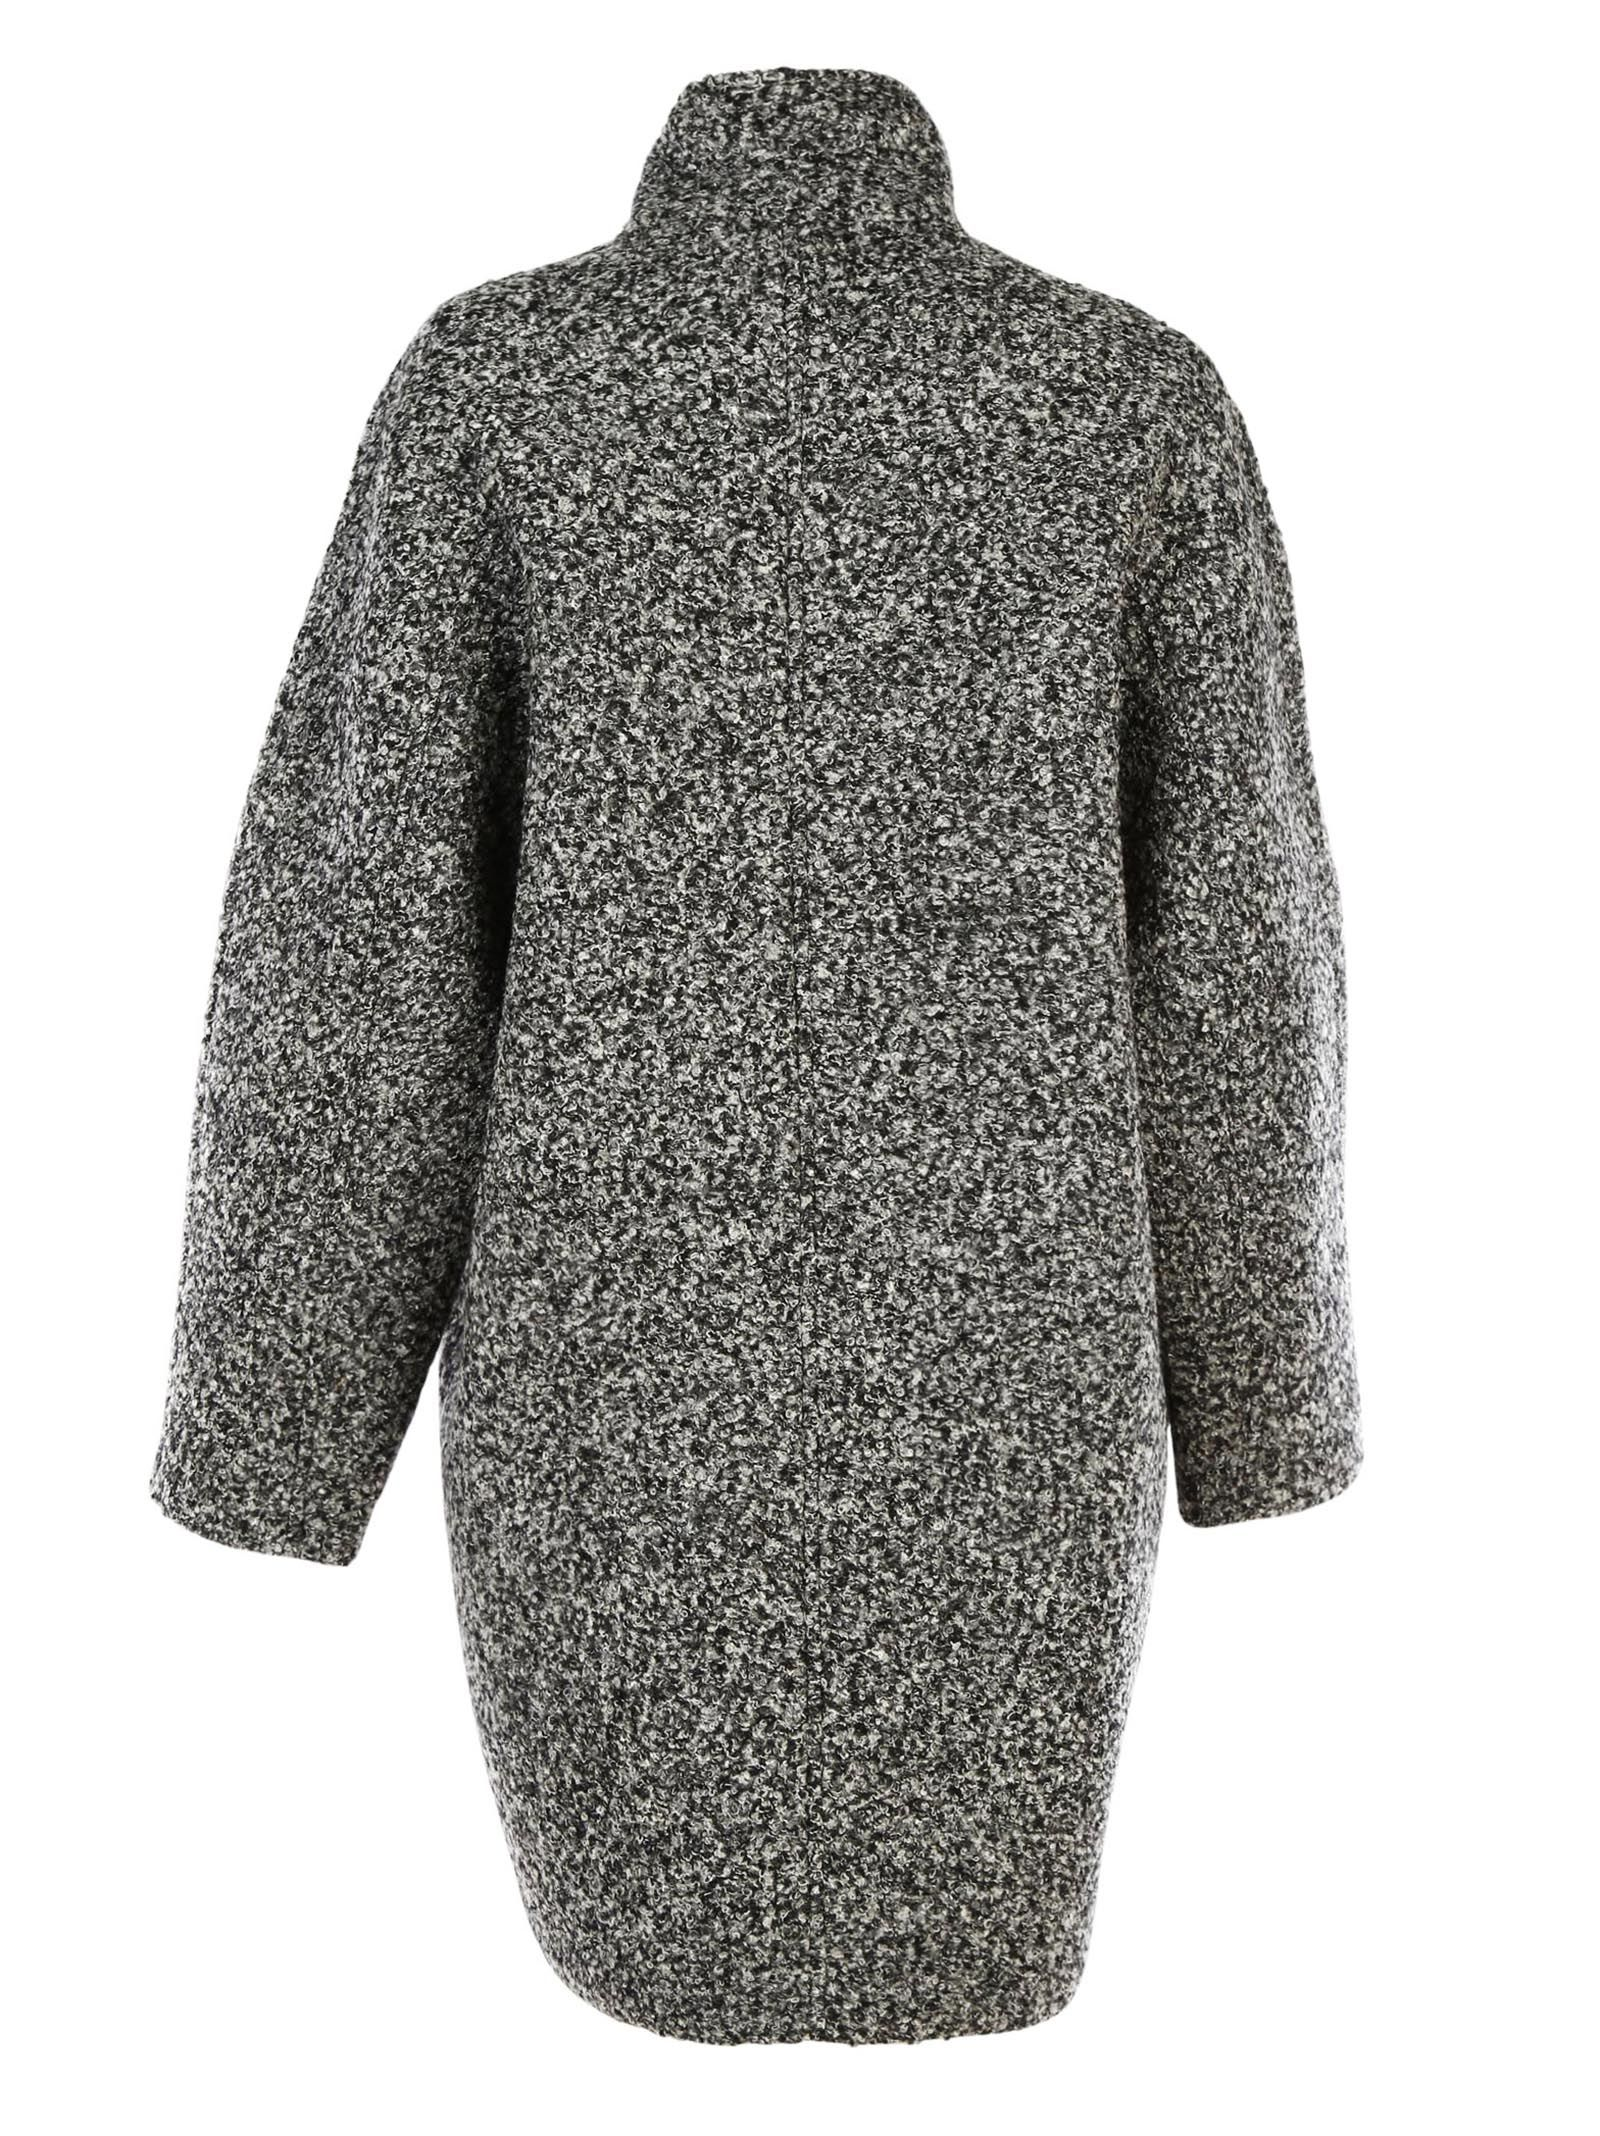 Shop online for women's wool & wool blend coats at gravitybox.ga Browse our selection of double-breasted coats, blazers, trenches and more. Free shipping and returns.